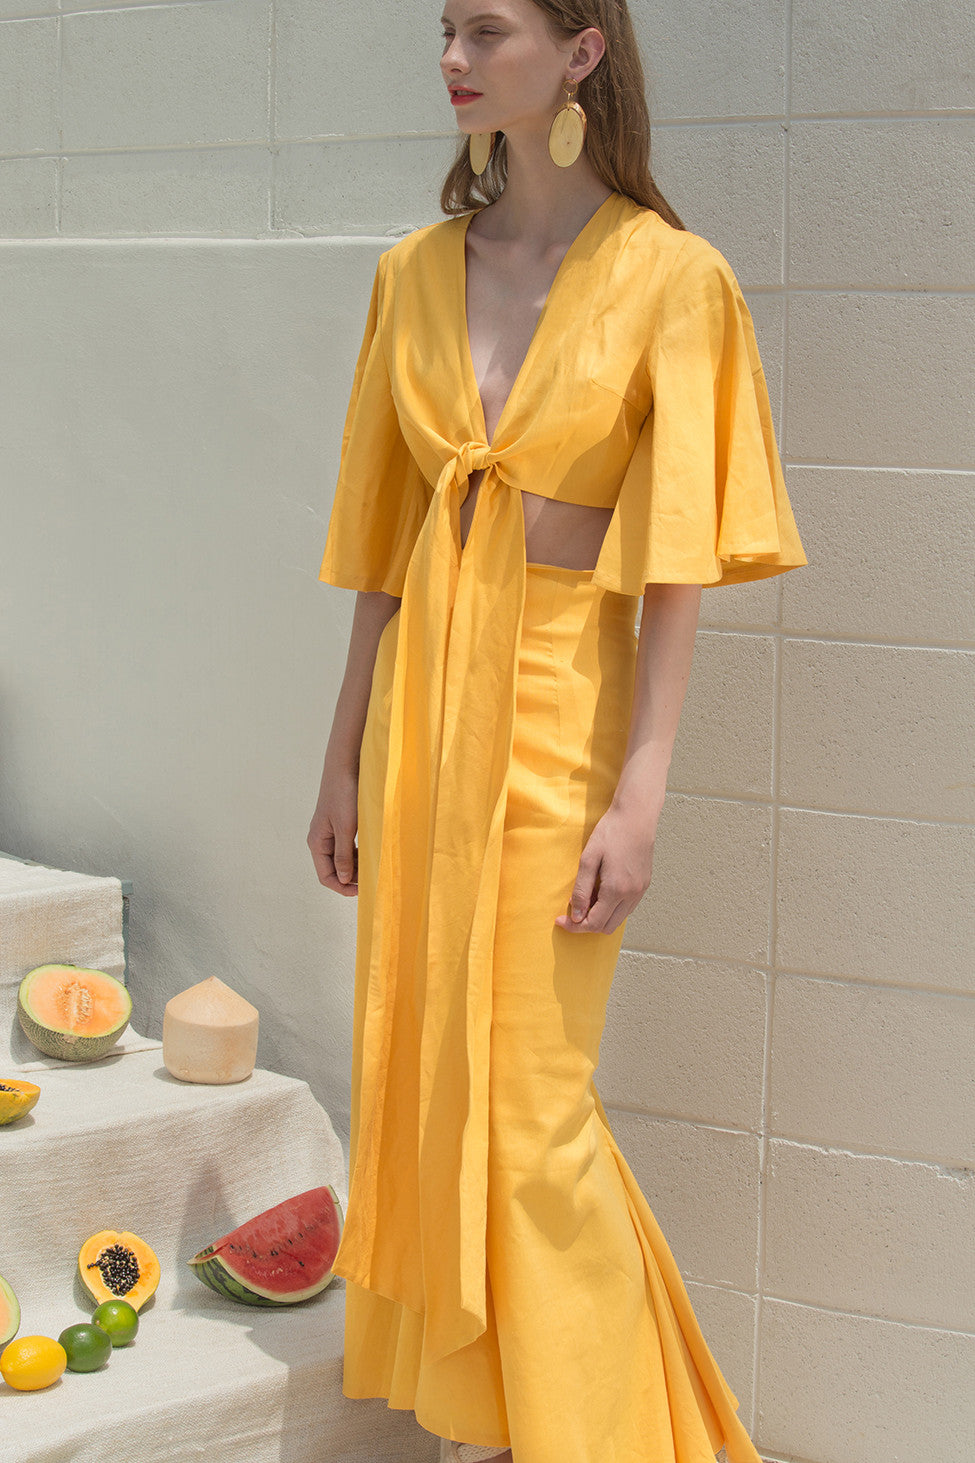 The Martyna Top in Yellow featuring gently flared short ruffle sleeves, dropped shoulder, V-neckline and non-detachable sash belt at front.